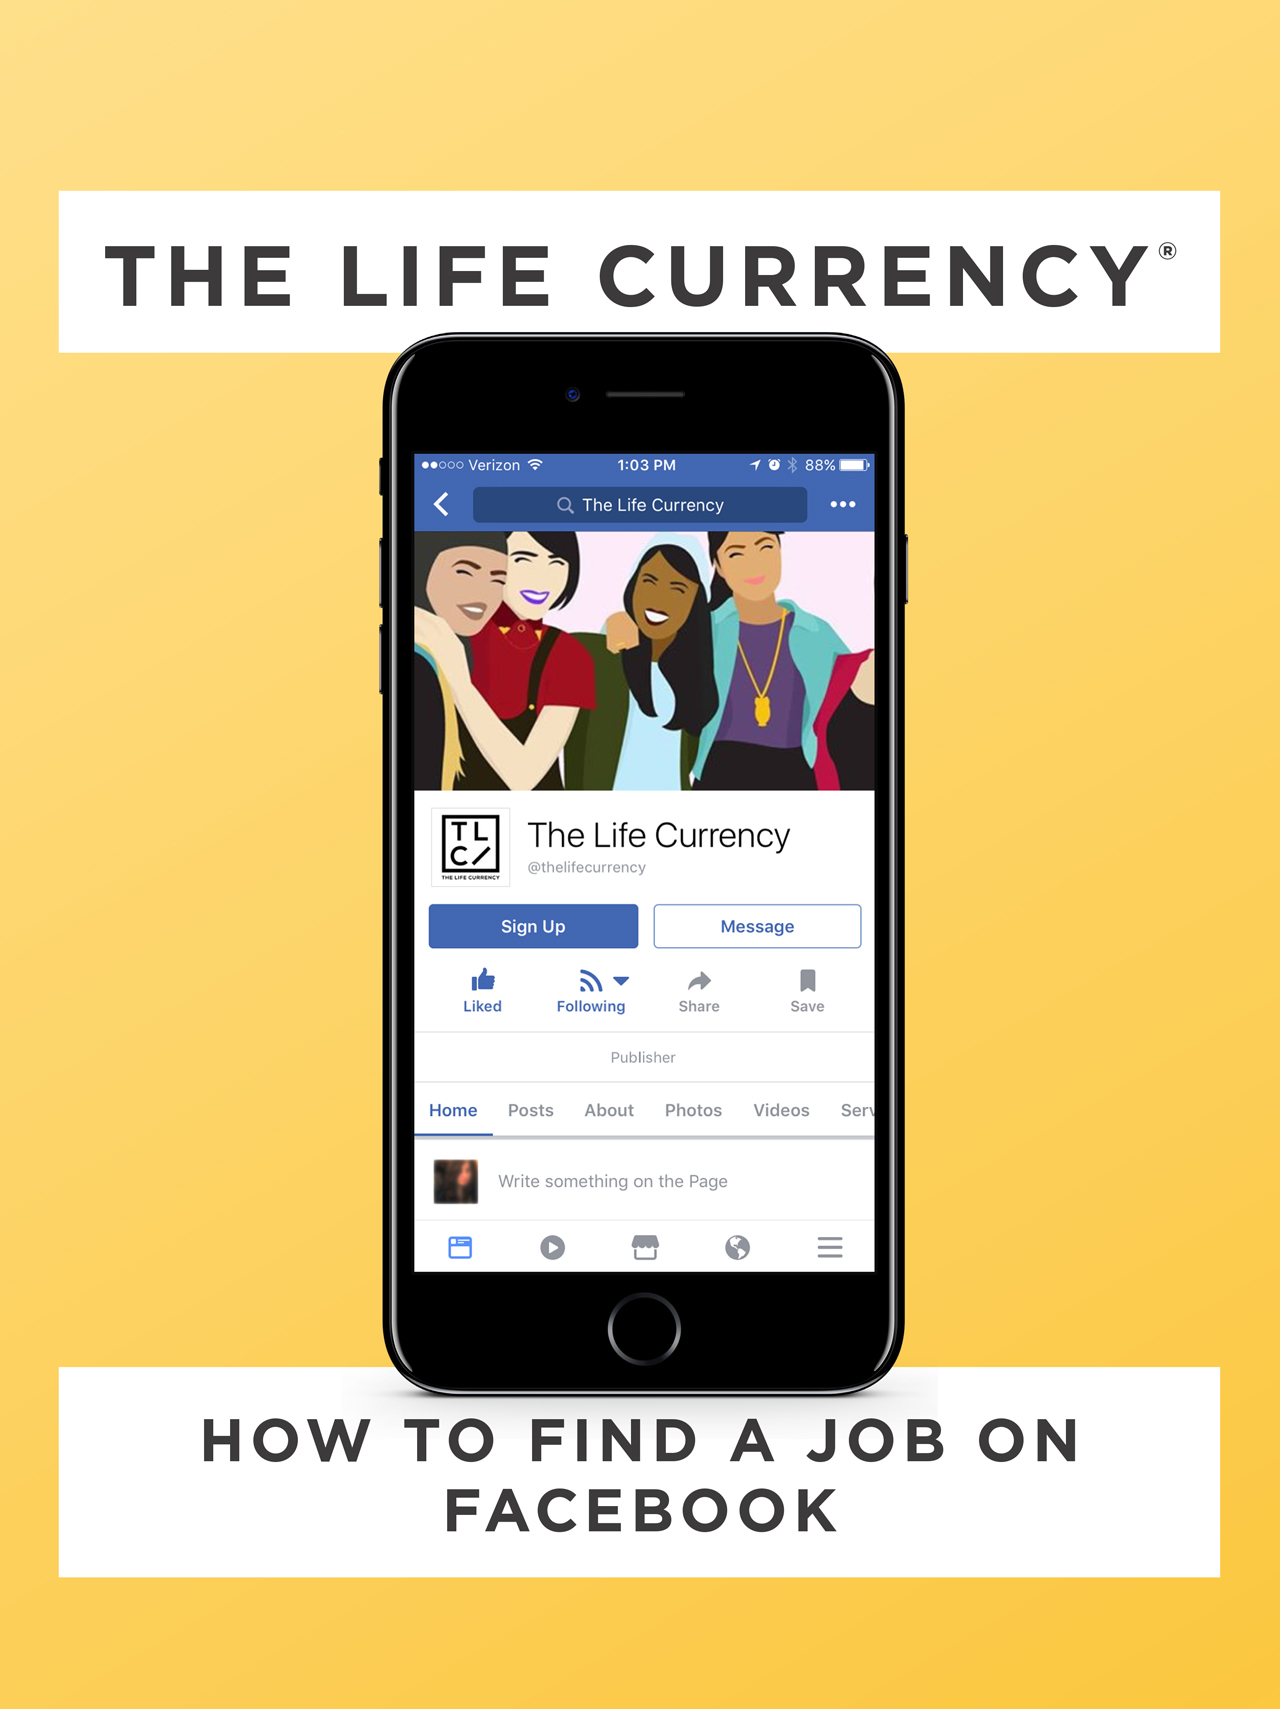 The Life Currency - How to Find a Job on Facebook